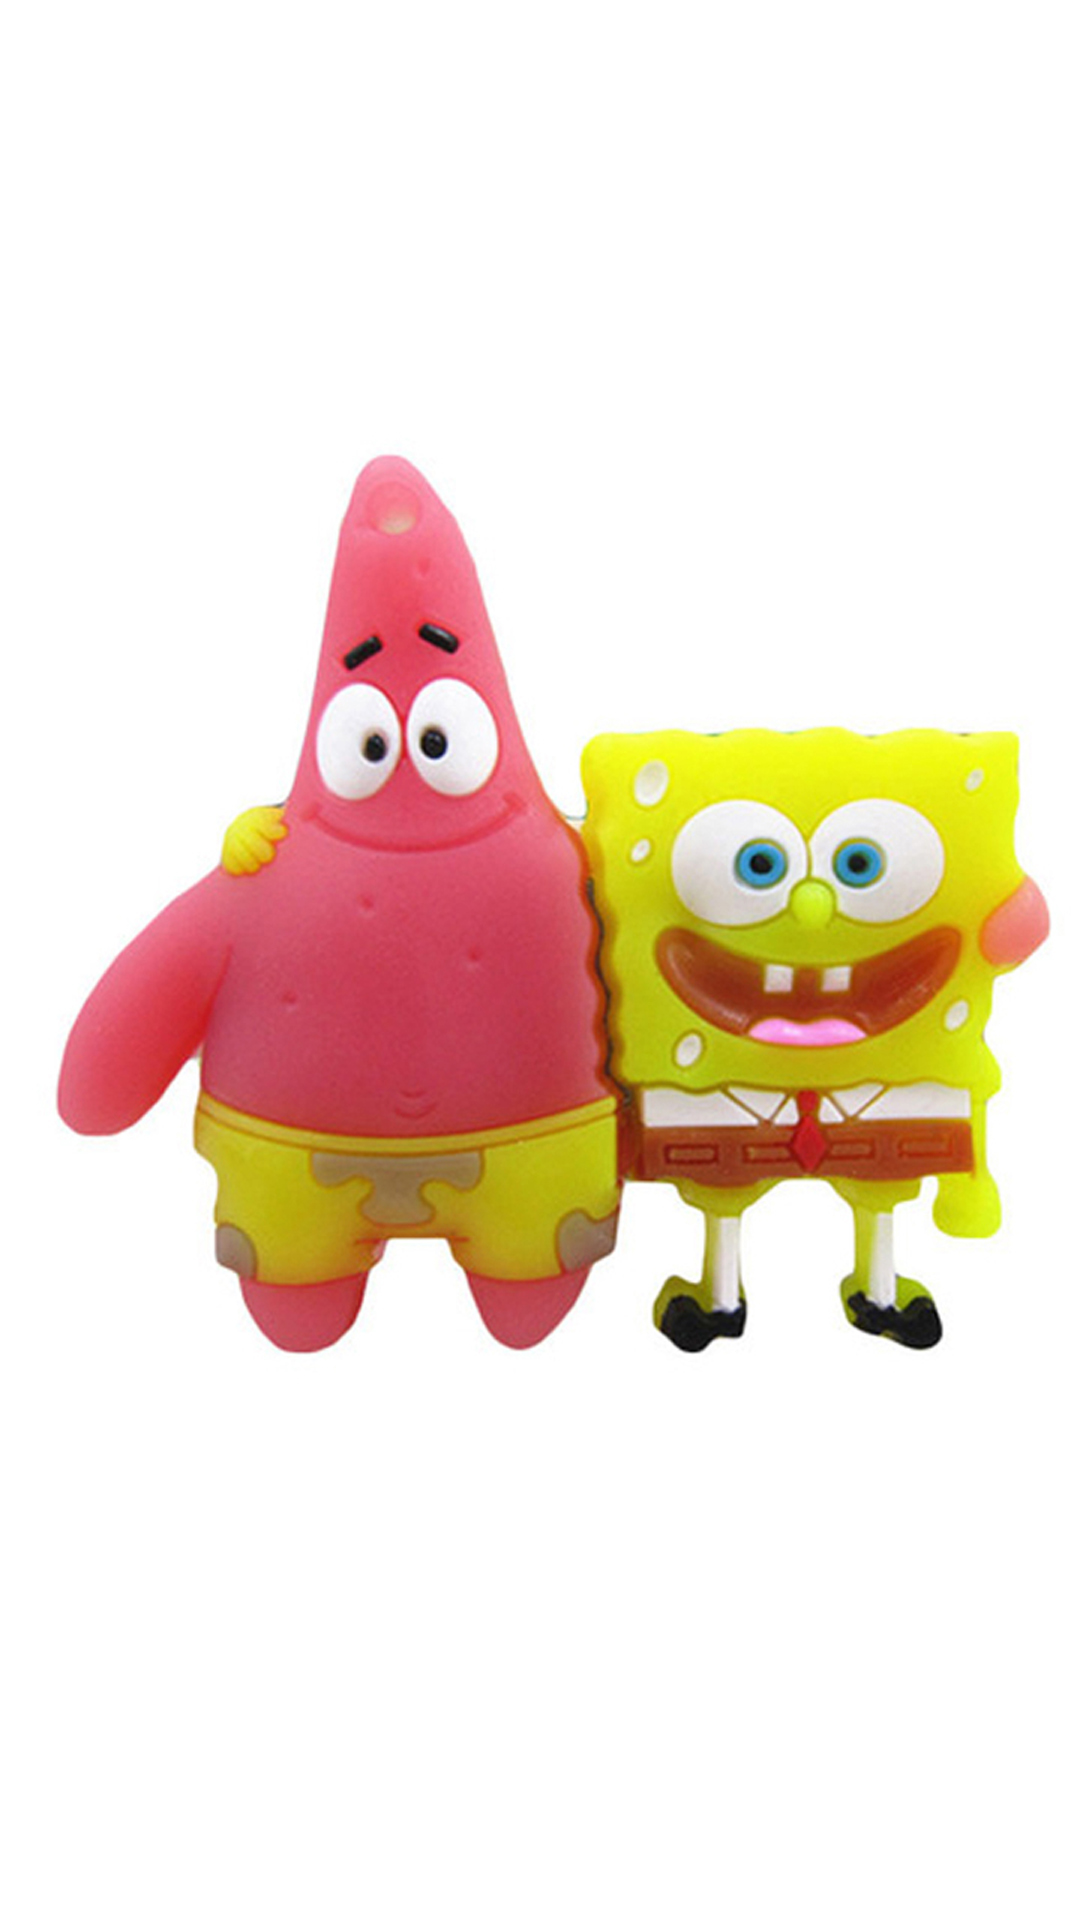 CHINMAYI Spongebob USB 2.0 16 GB Designer Pen Drive (Multicolor)